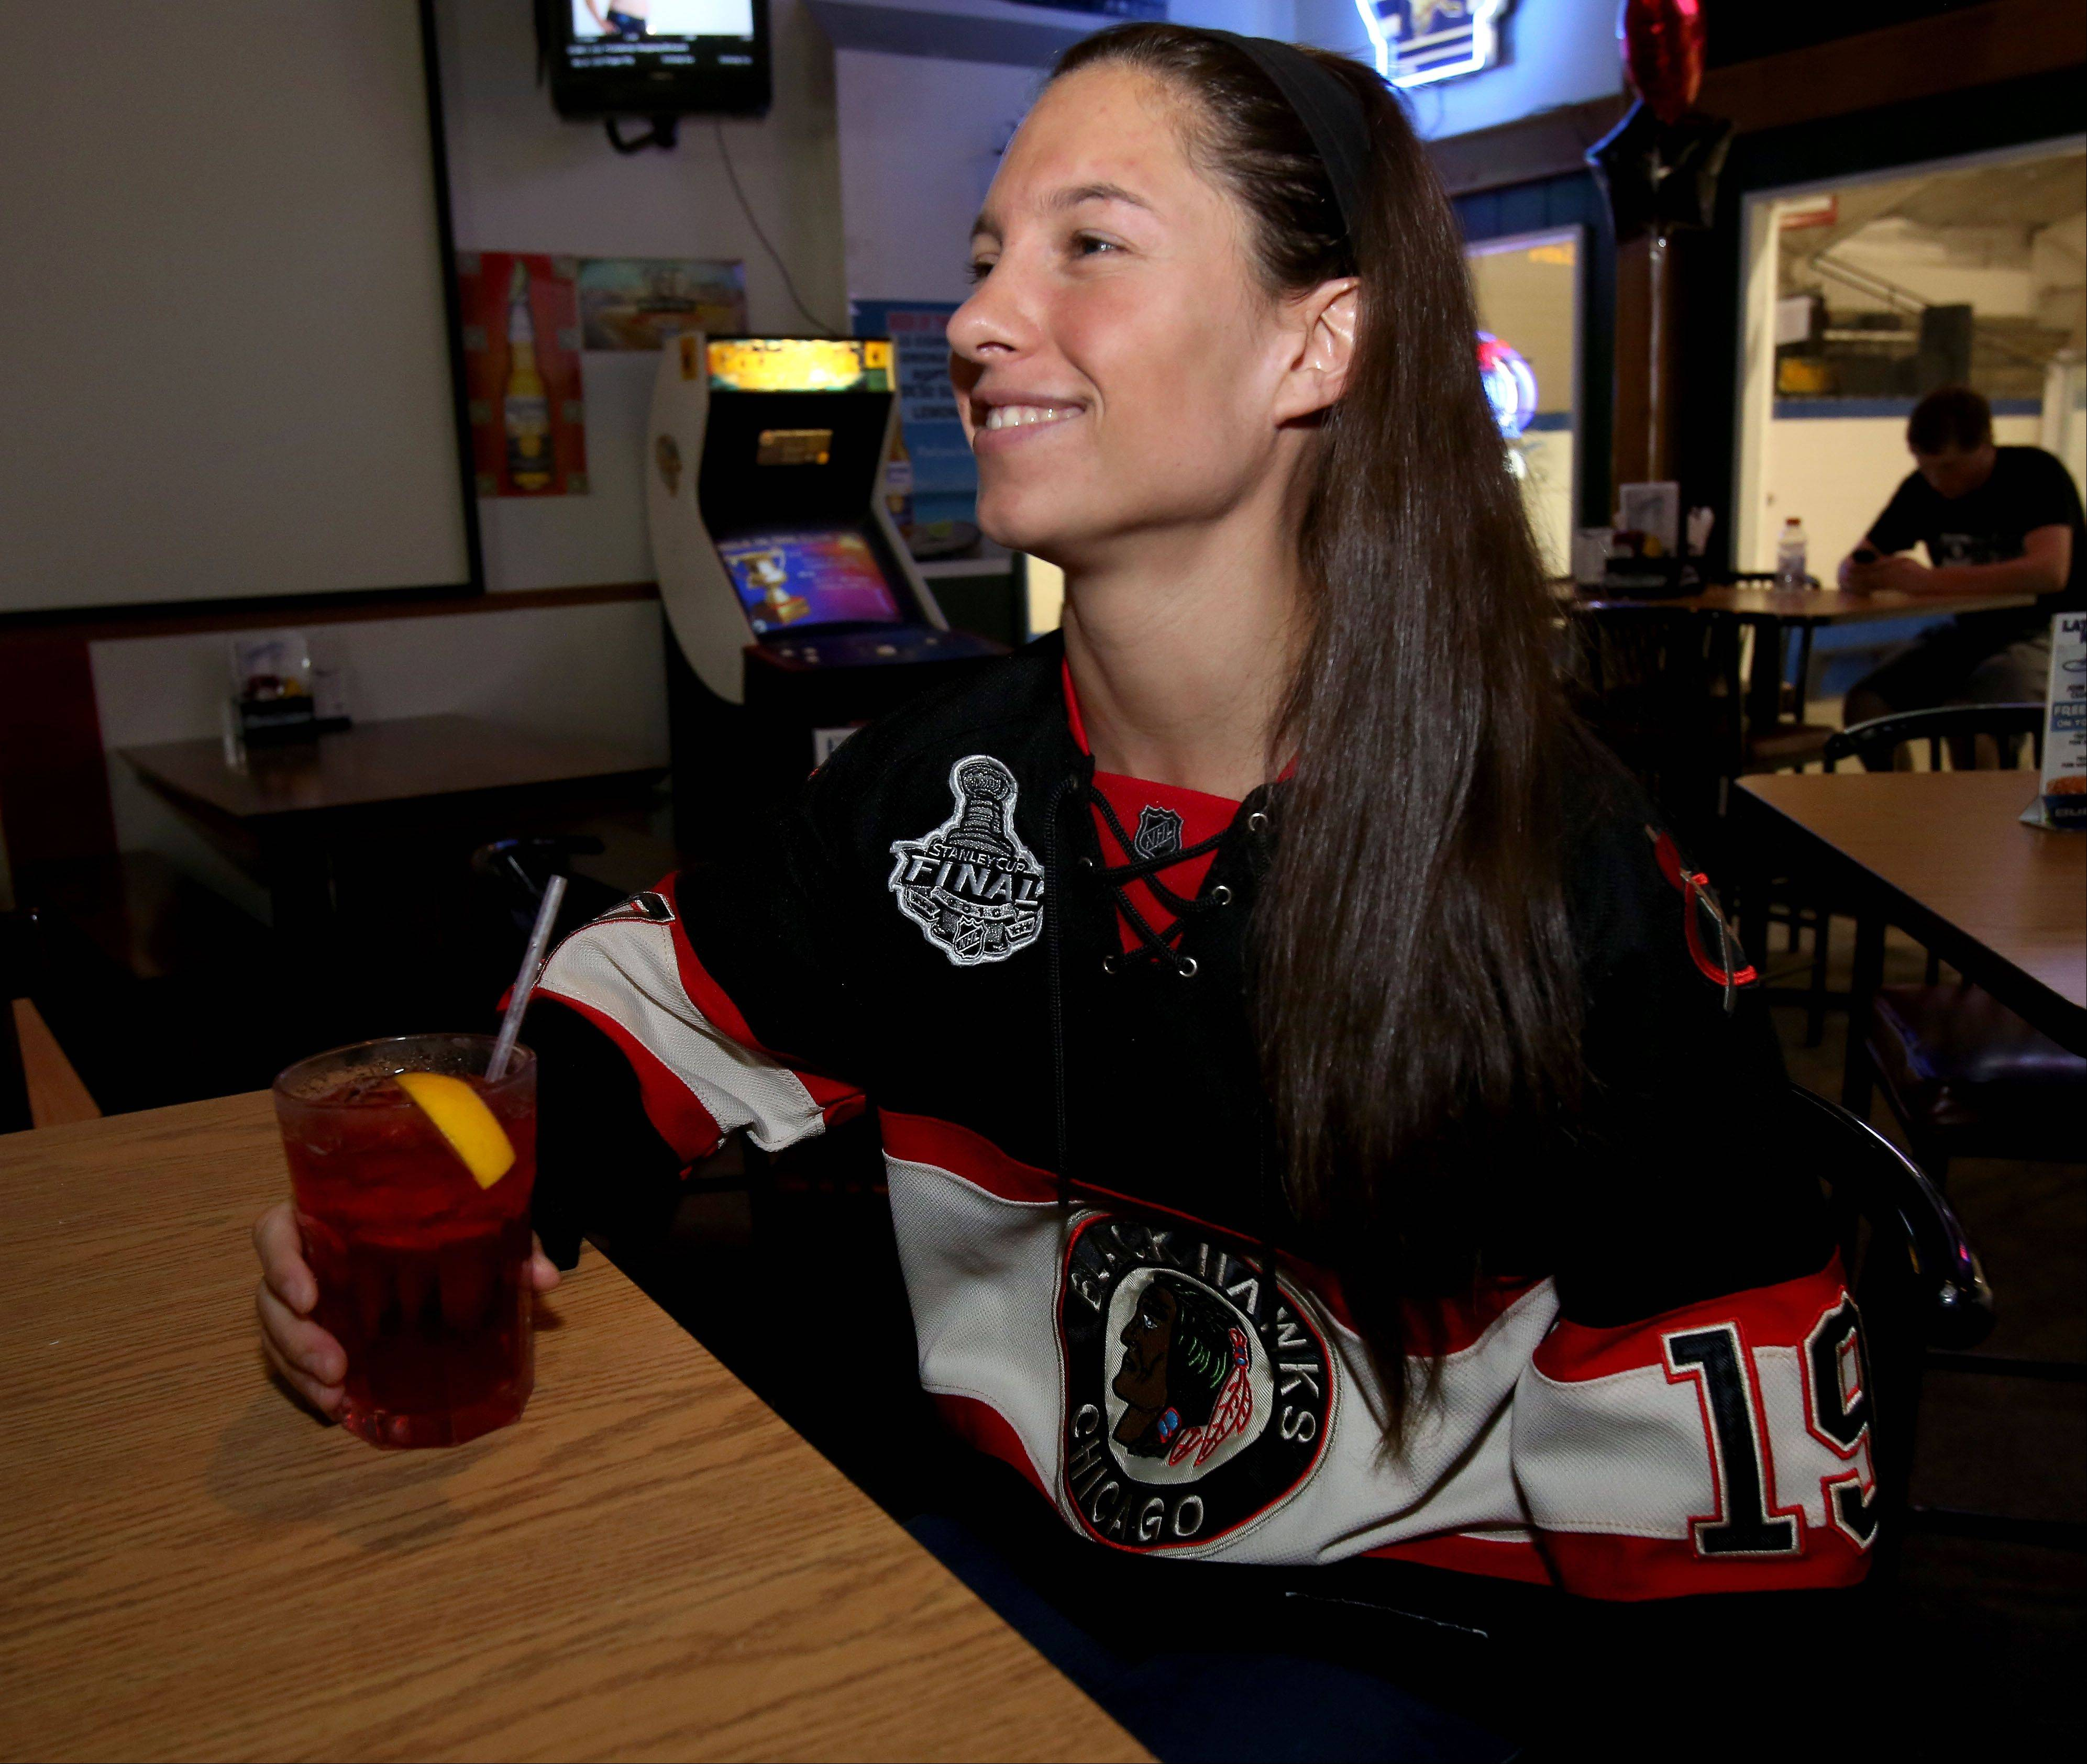 Amanda Muruato shows off her team spirit at Blue Line Bar & Grill in Addison.